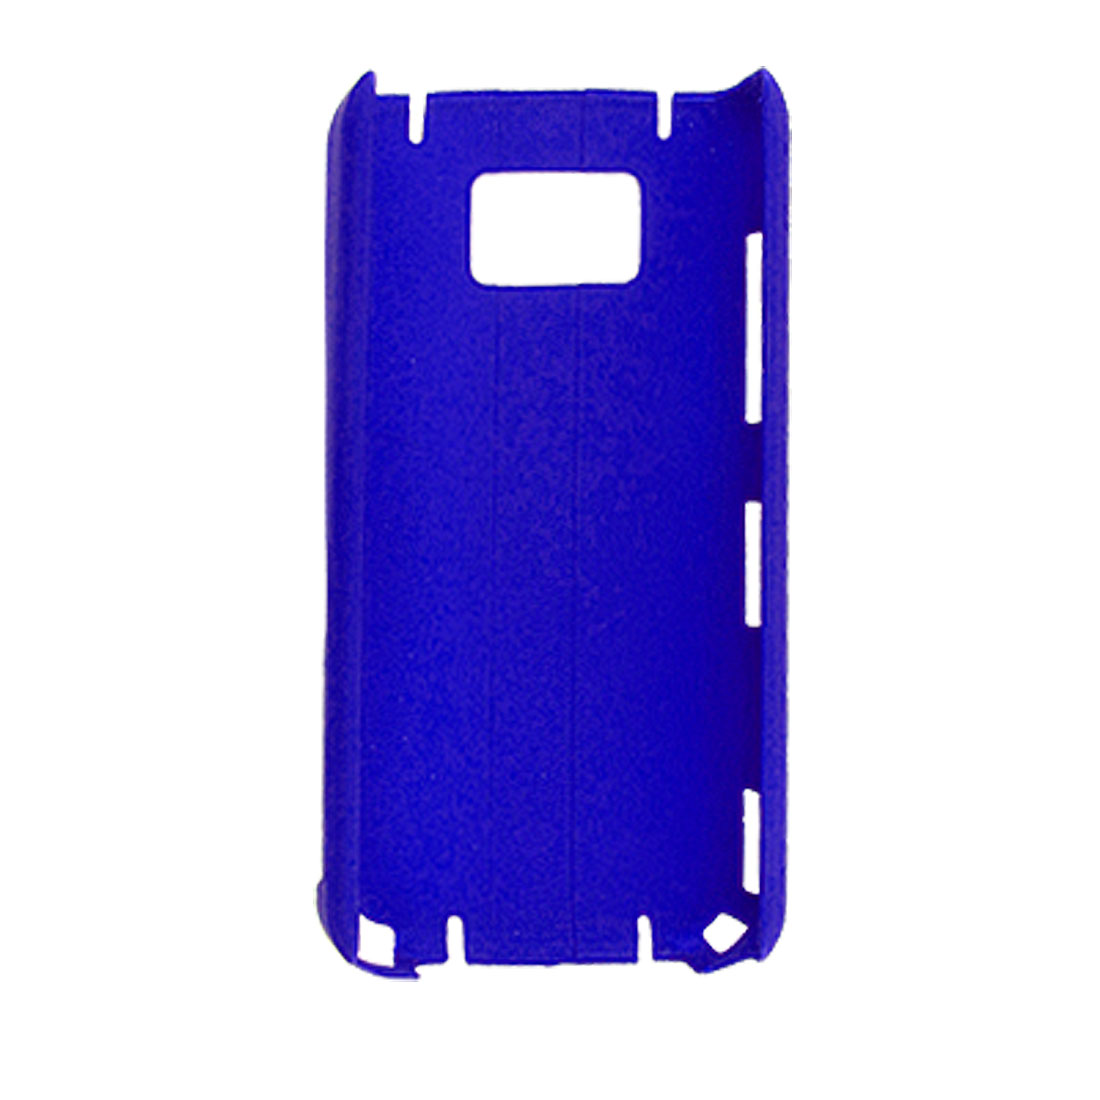 Blue Rubberized Hard Plastic Case Cover for Nokia 5530